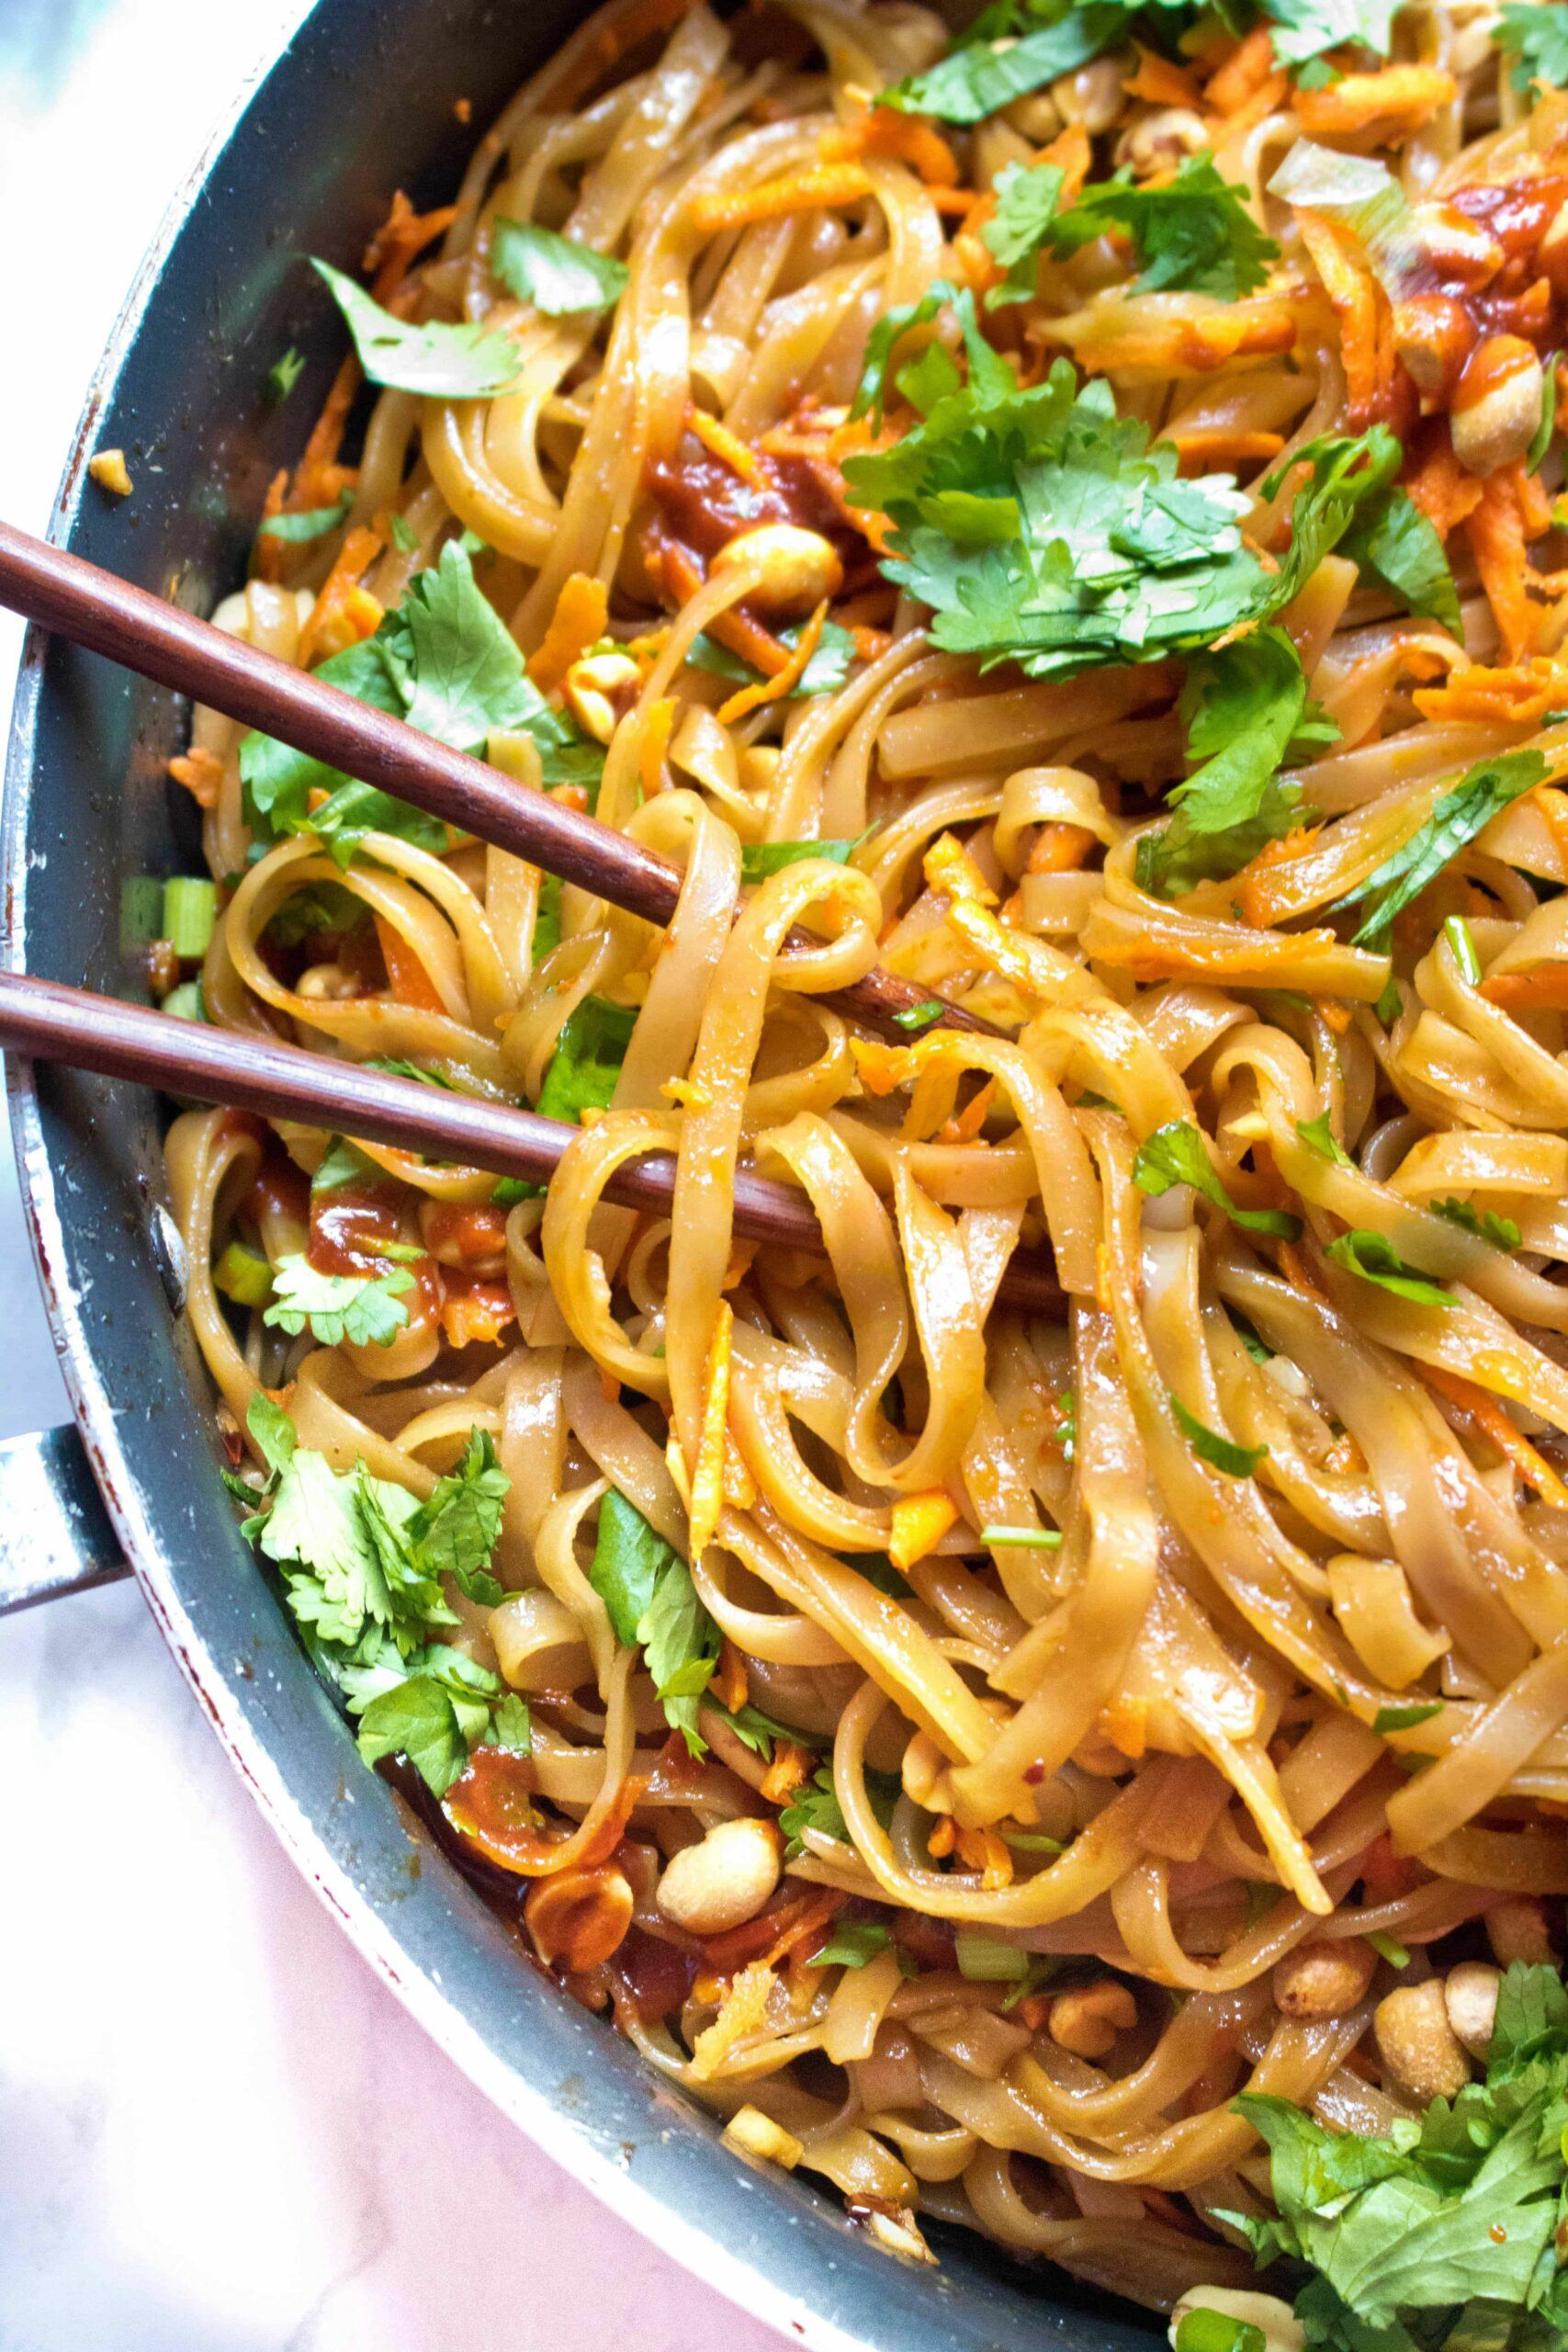 12 Minute Sweet and Spicy Noodles - Cooking Recipes Noodles